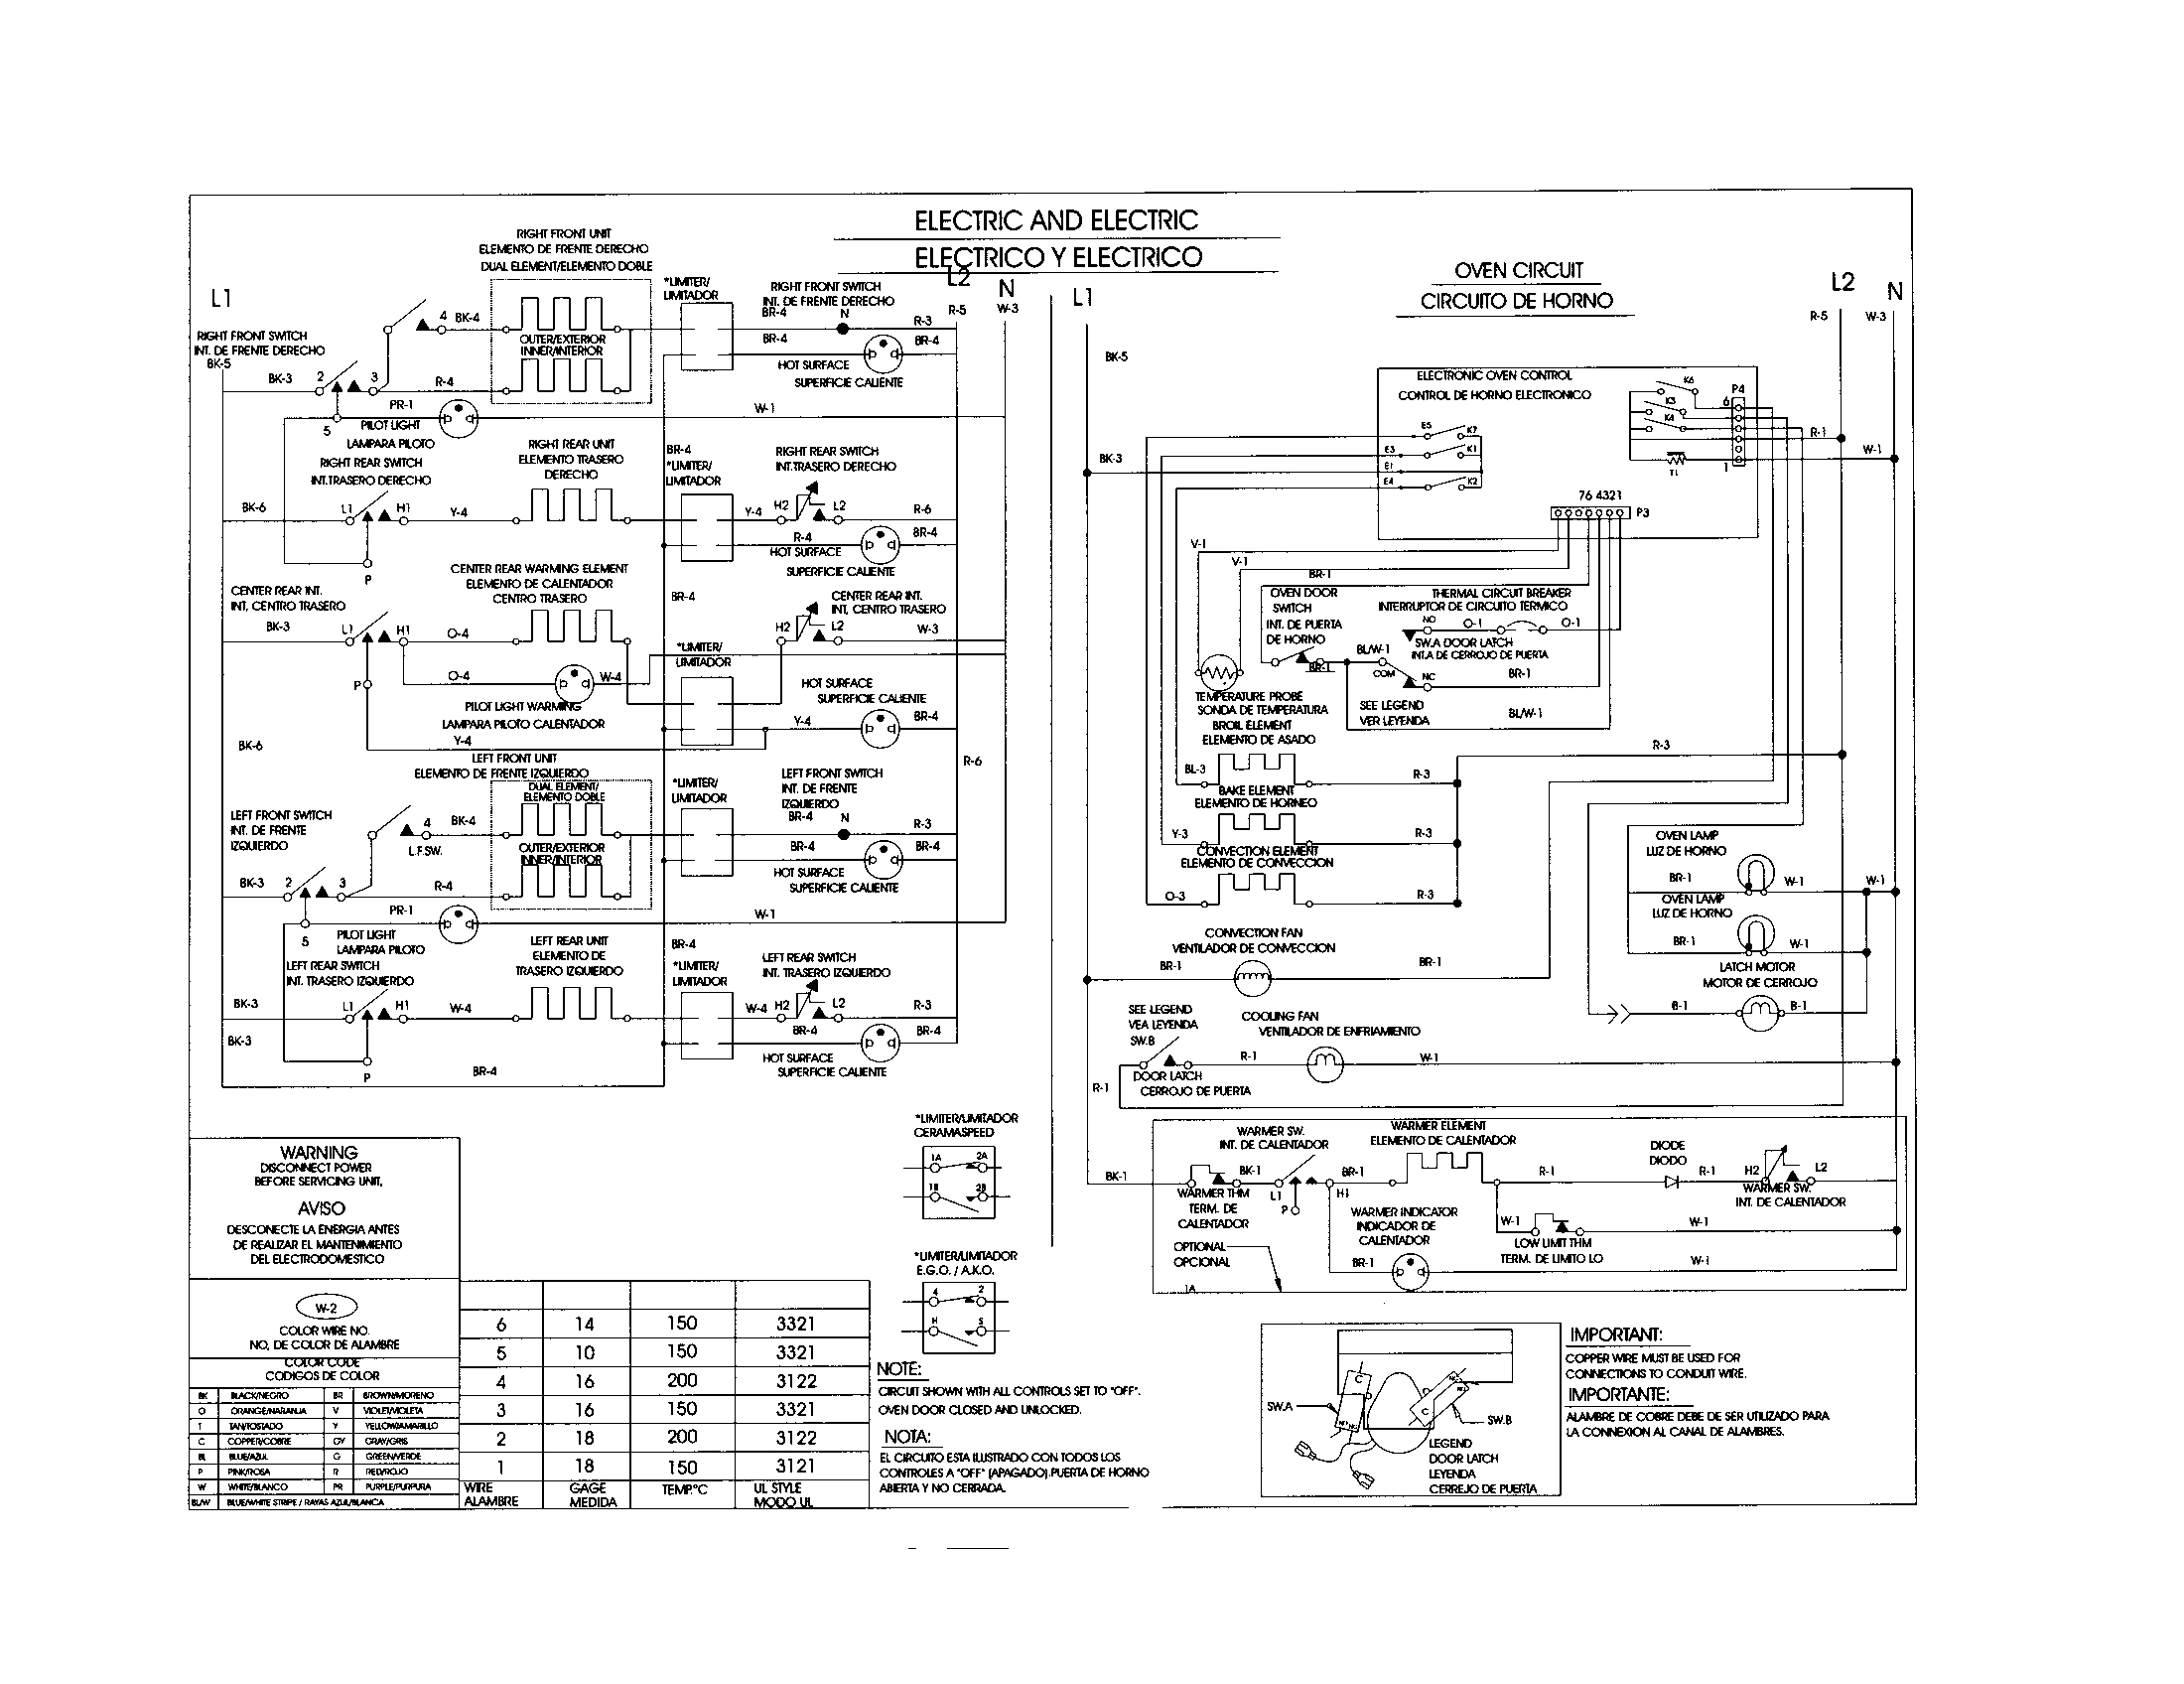 kenmore dishwasher wiring diagram to wiring diagram parts with regard to kenmore elite dishwasher 665 parts diagram kenmore dishwasher wiring diagram lg dishwasher wiring diagram  at soozxer.org